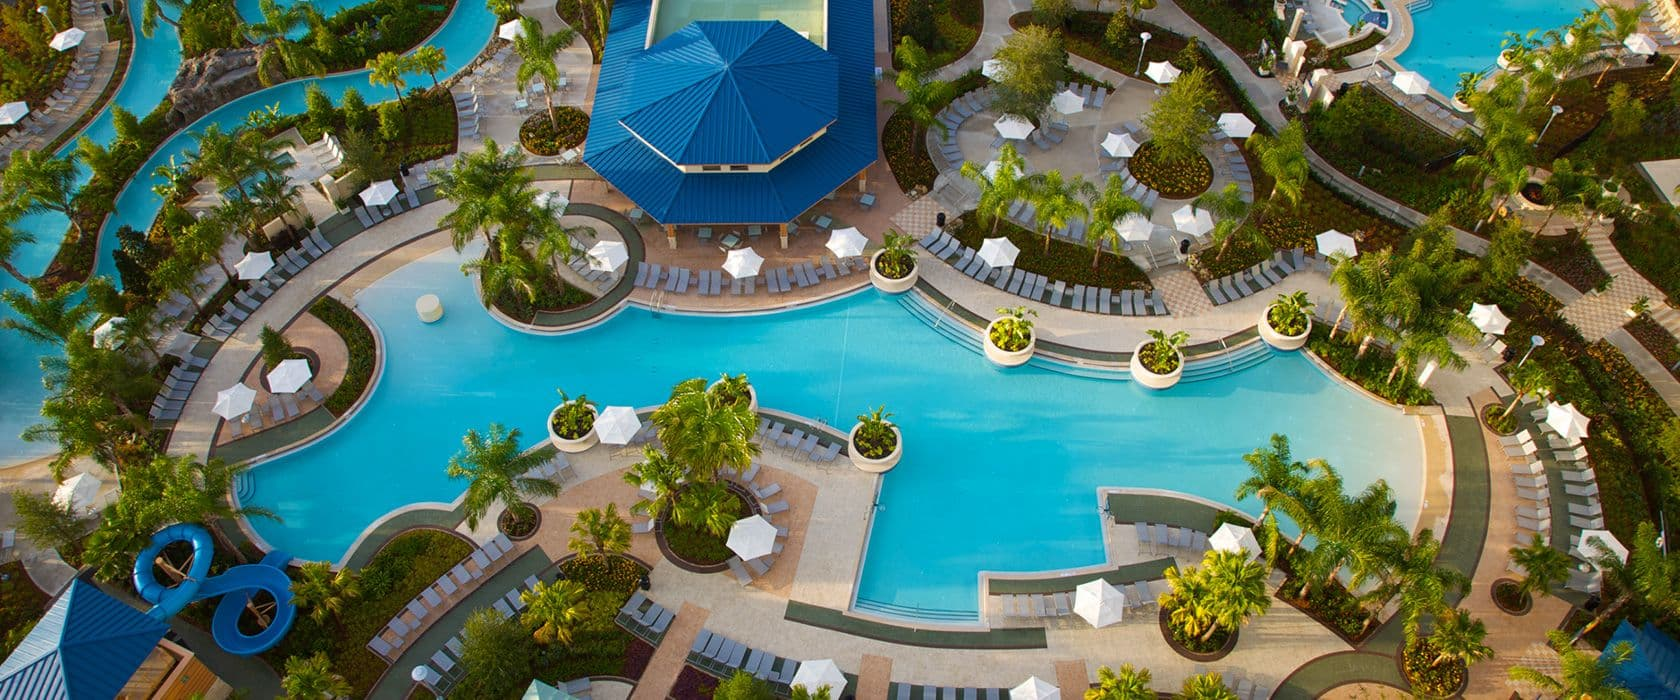 pools lazy river recreation hilton orlando lazy river swimming pool designs. beautiful ideas. Home Design Ideas